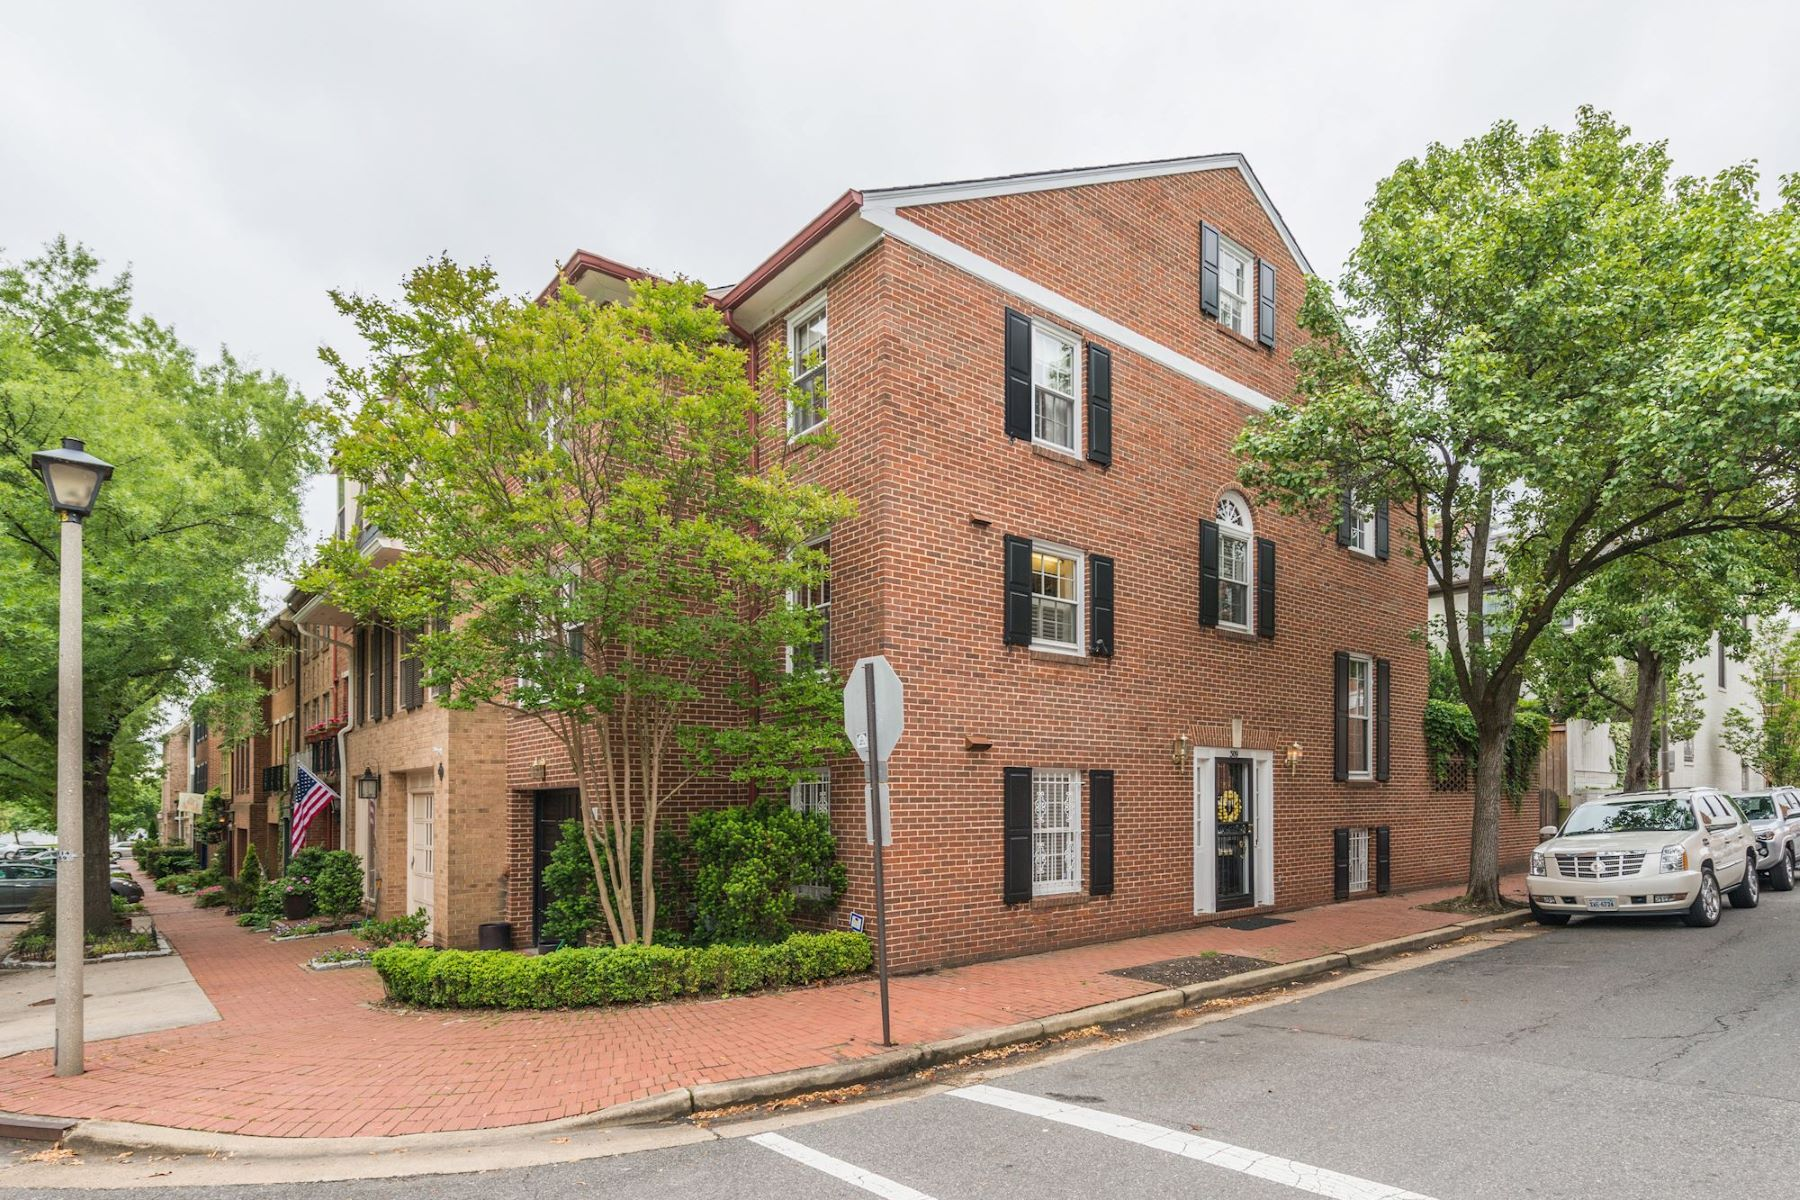 Townhouse for Sale at 309 Lee Street N, Alexandria Old Town, Alexandria, Virginia, 22314 United States